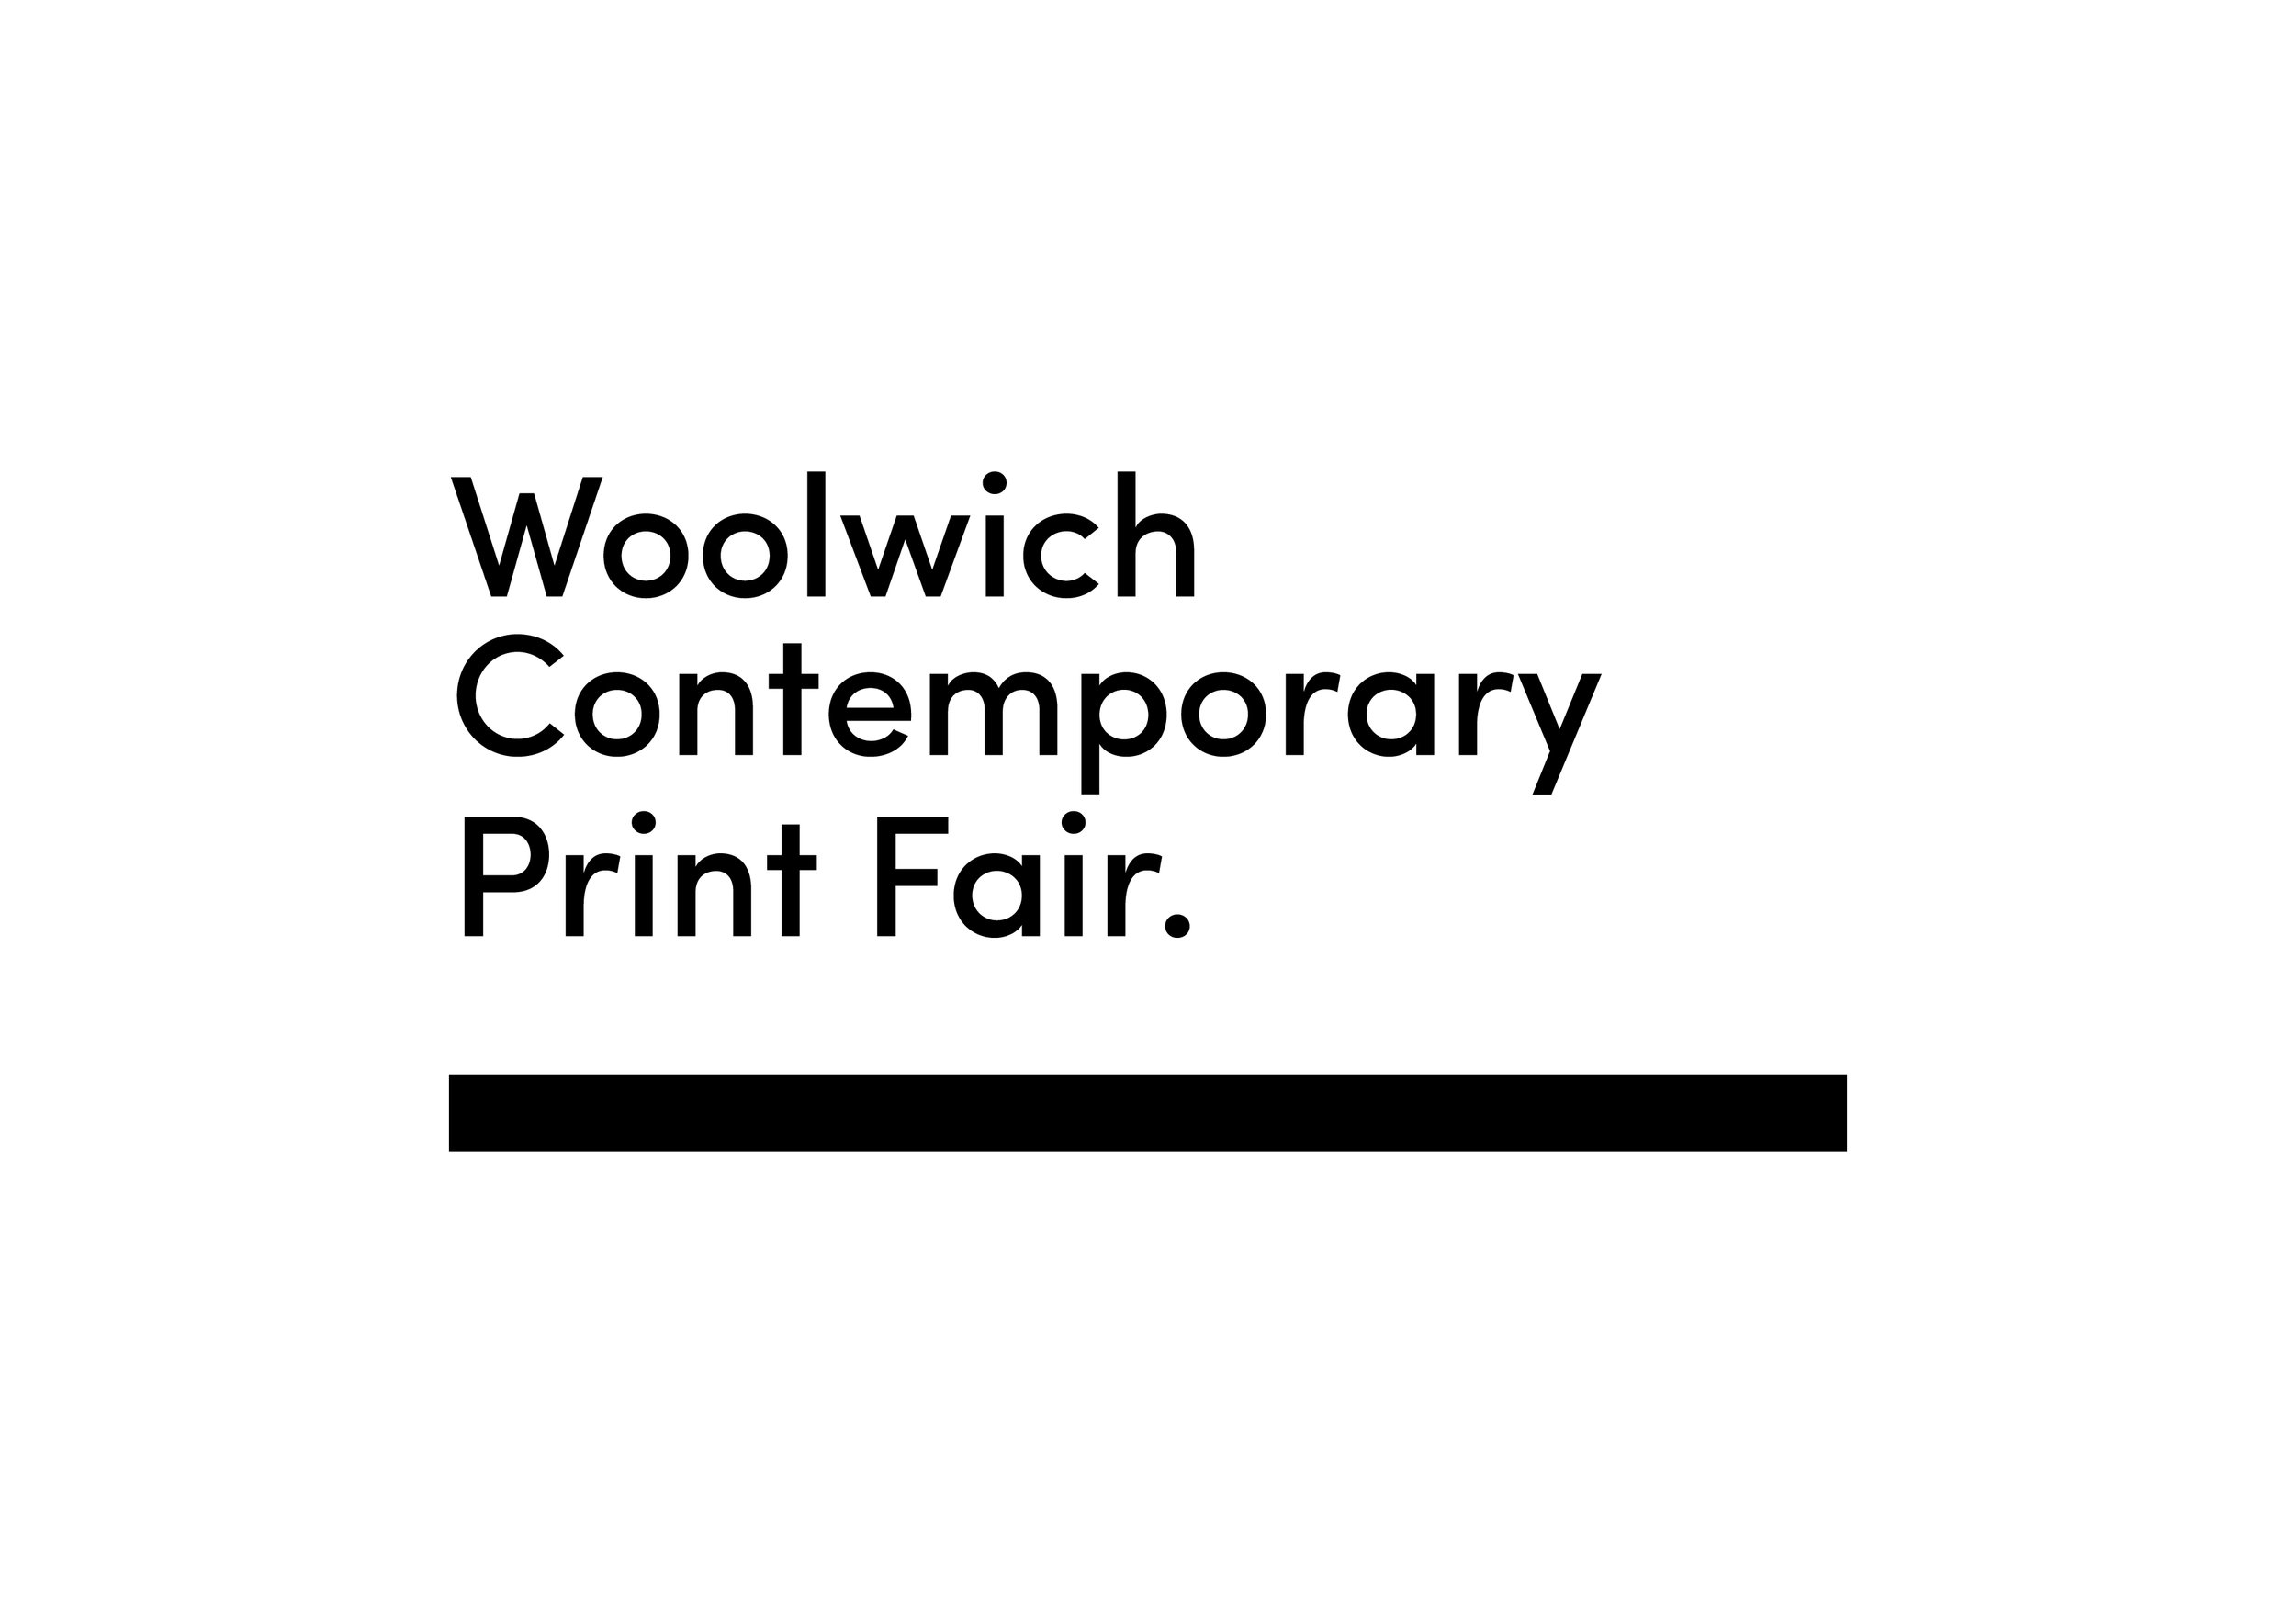 Woolwich Contemporary Print Fair Prize